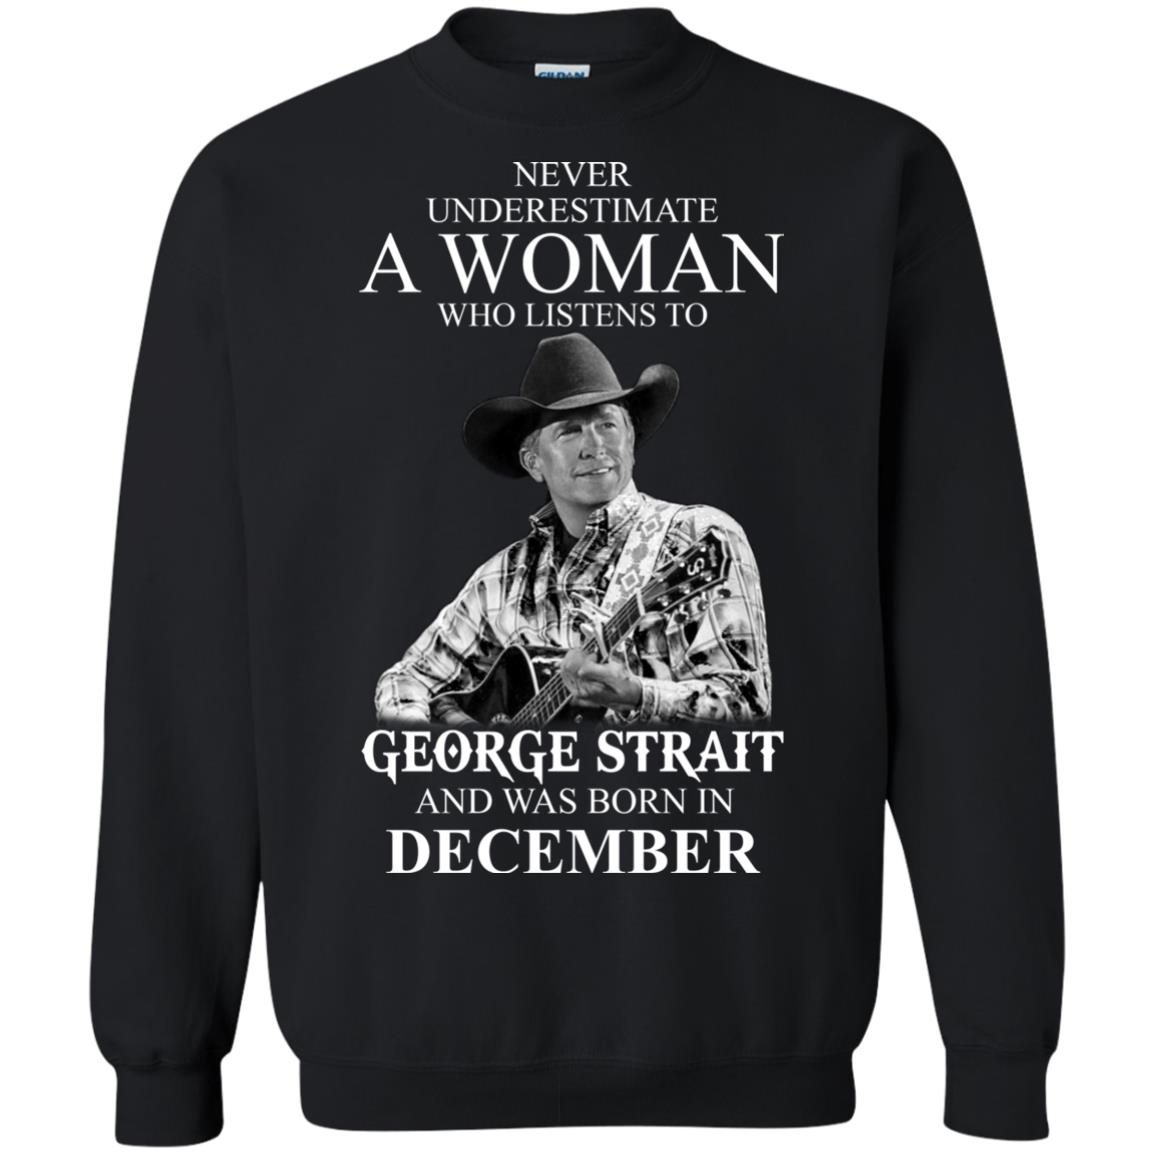 image 344 - Never Underestimate A Woman Who Listens To George Strait And Was Born In December shirt